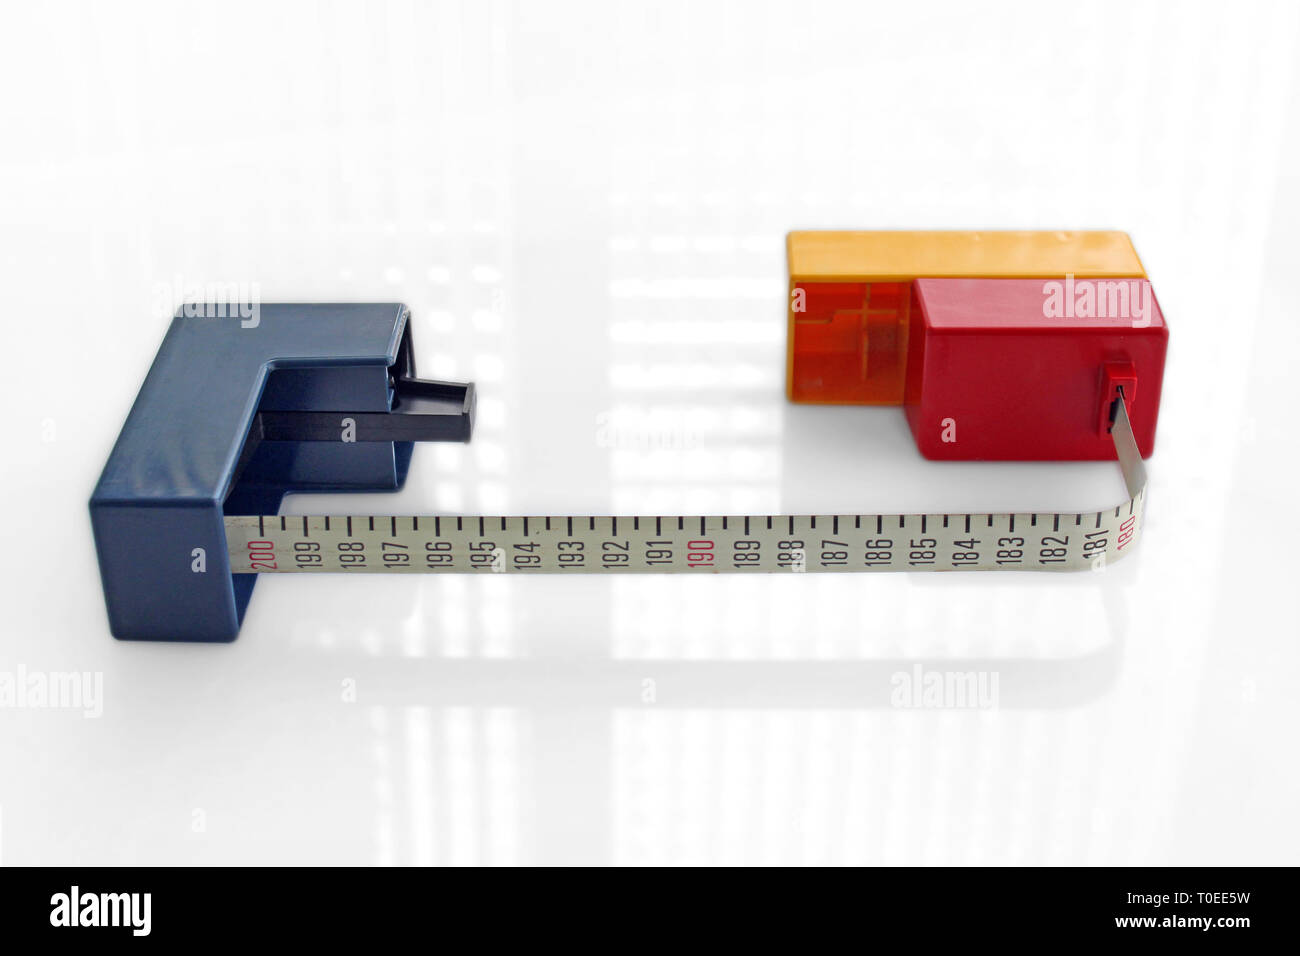 Vintage arty Mondrian style measuring tape meter, isolated on white background - Stock Image